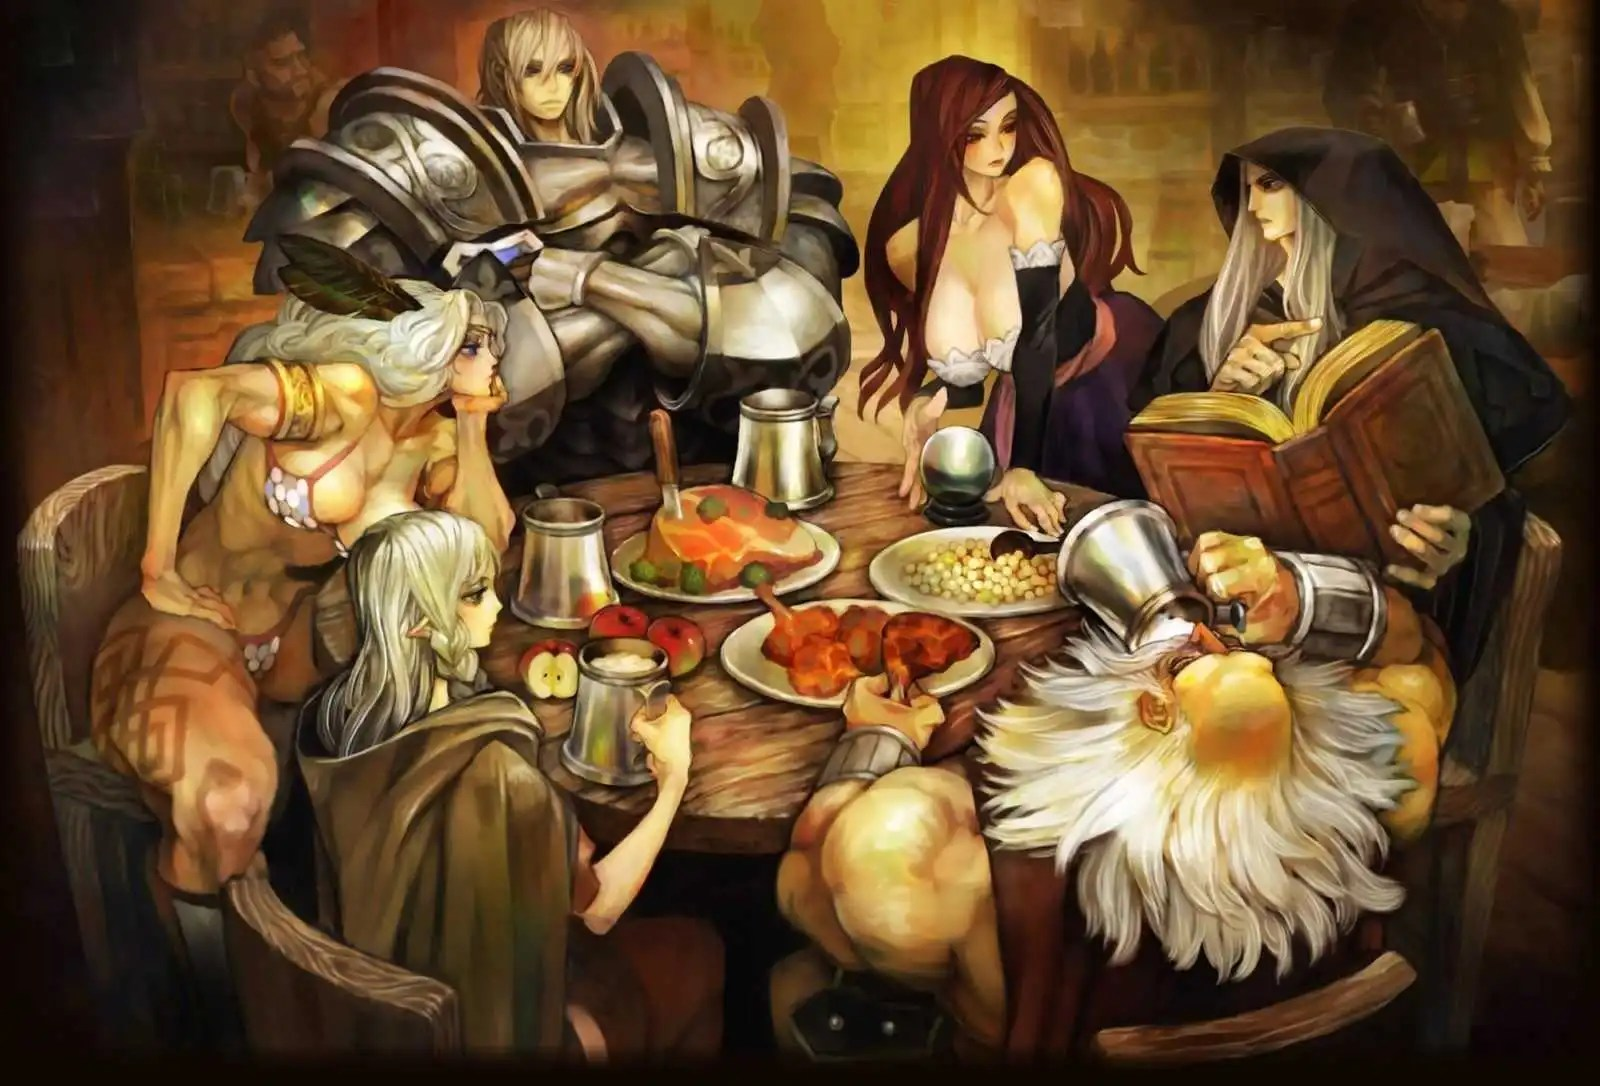 Leakato annuncio di Dragon's Crown su PlayStation 4